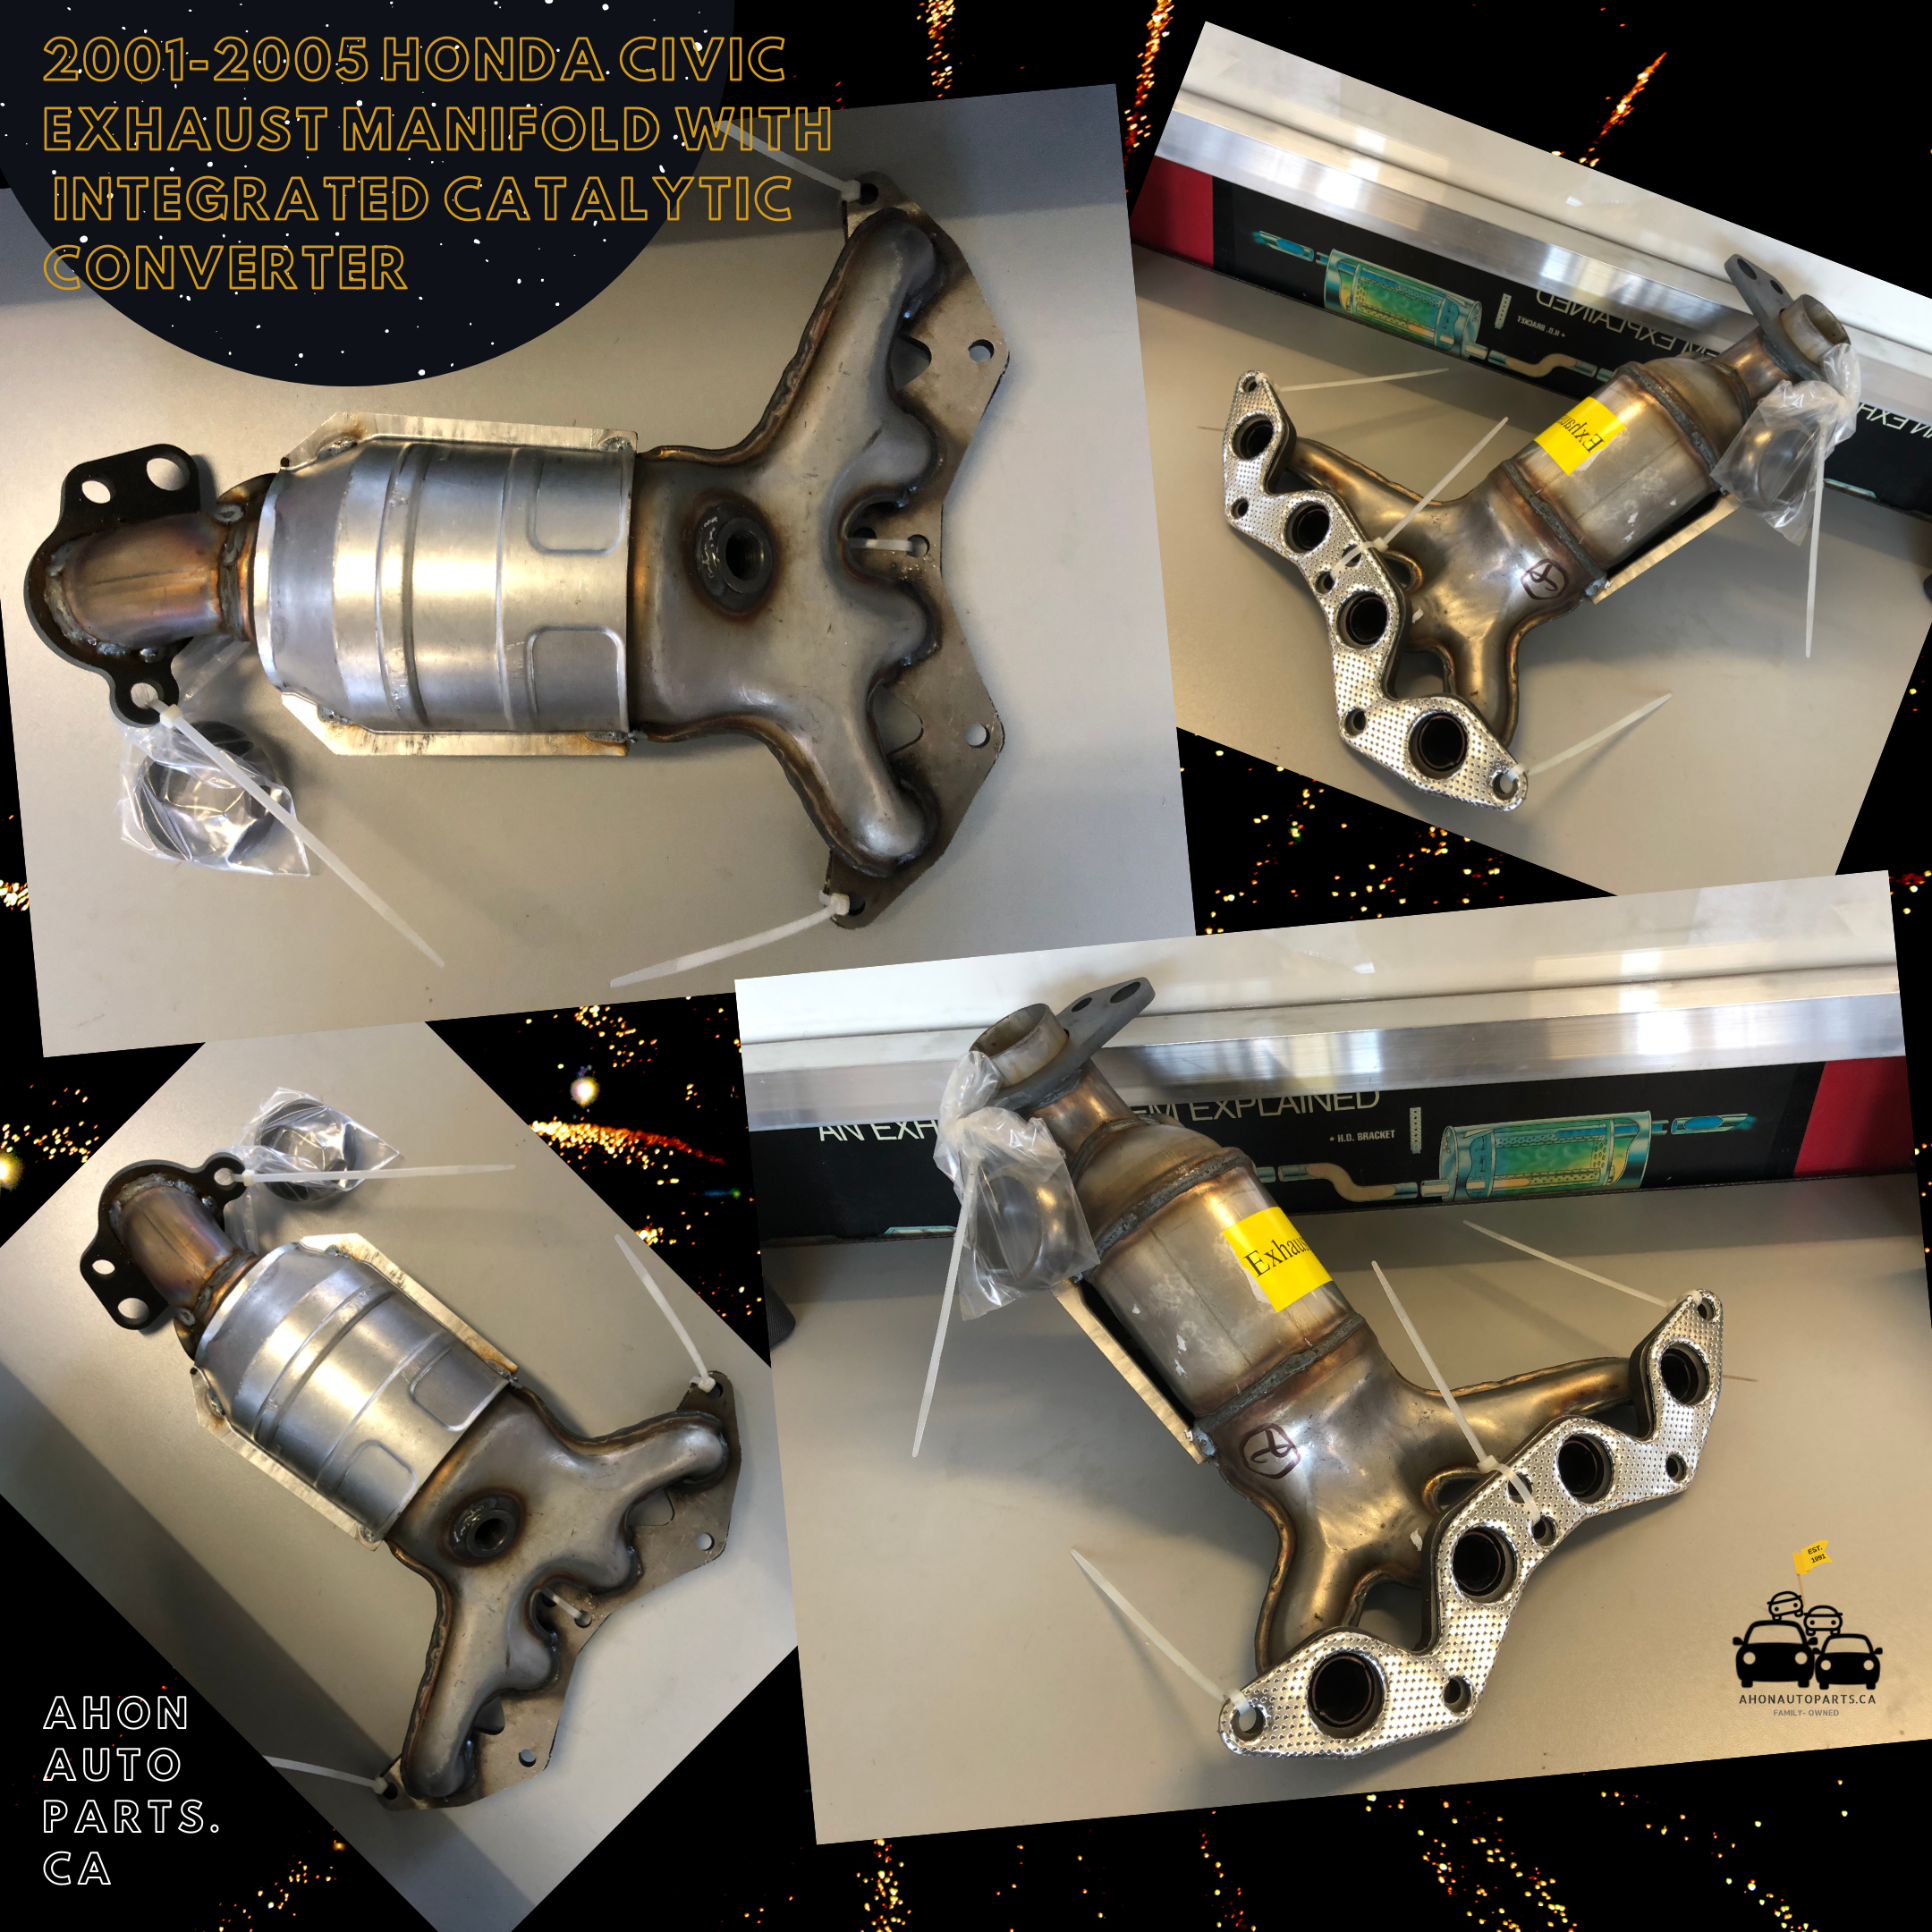 2001 2005 Honda Civic Exhaust Manifold With Integrated Catalytic Converter Honda Civic Civic Honda